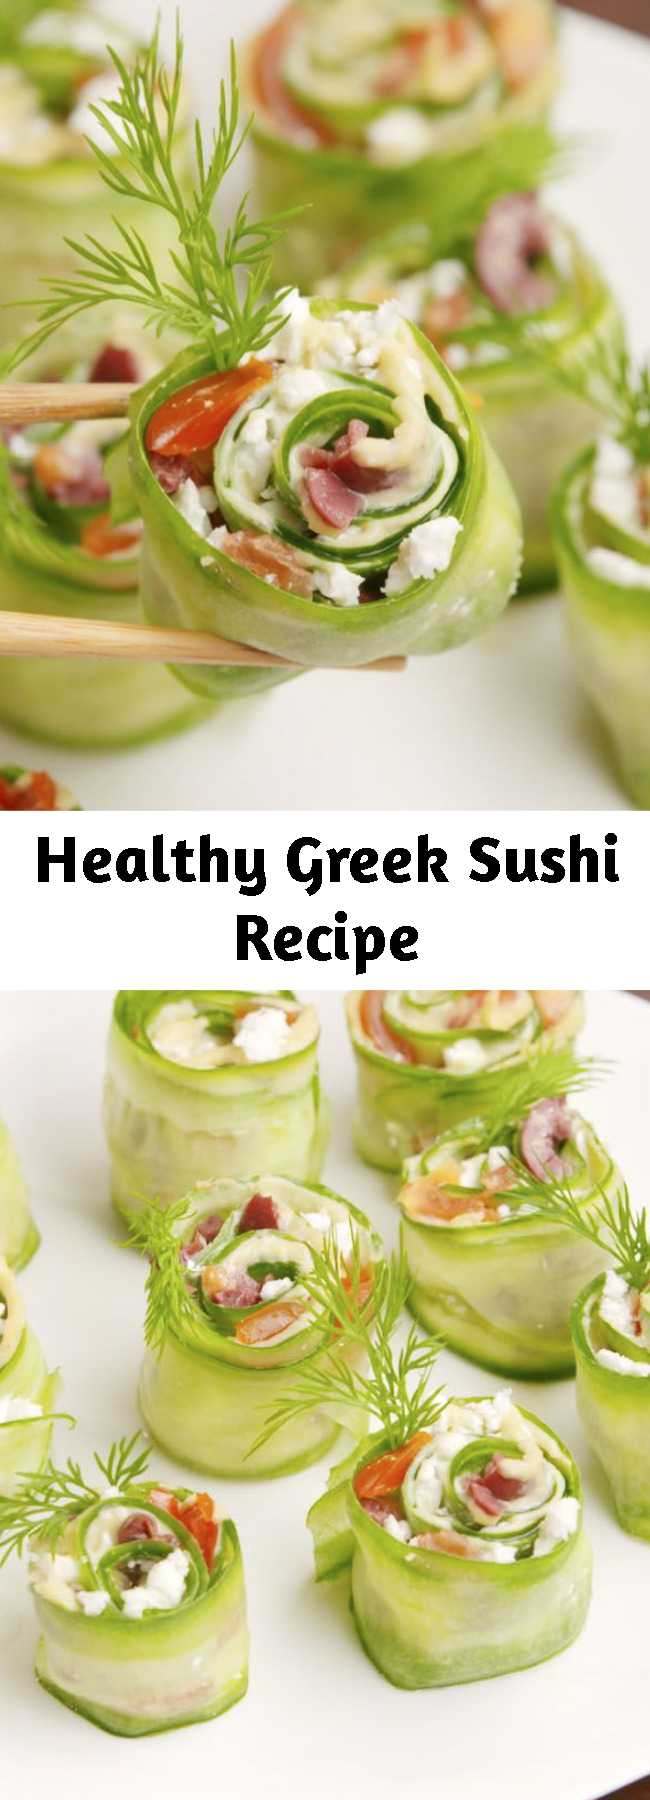 Healthy Greek Sushi Recipe - Get your chopsticks ready! #food #healthyeating #cleaneating #gf #glutenfree